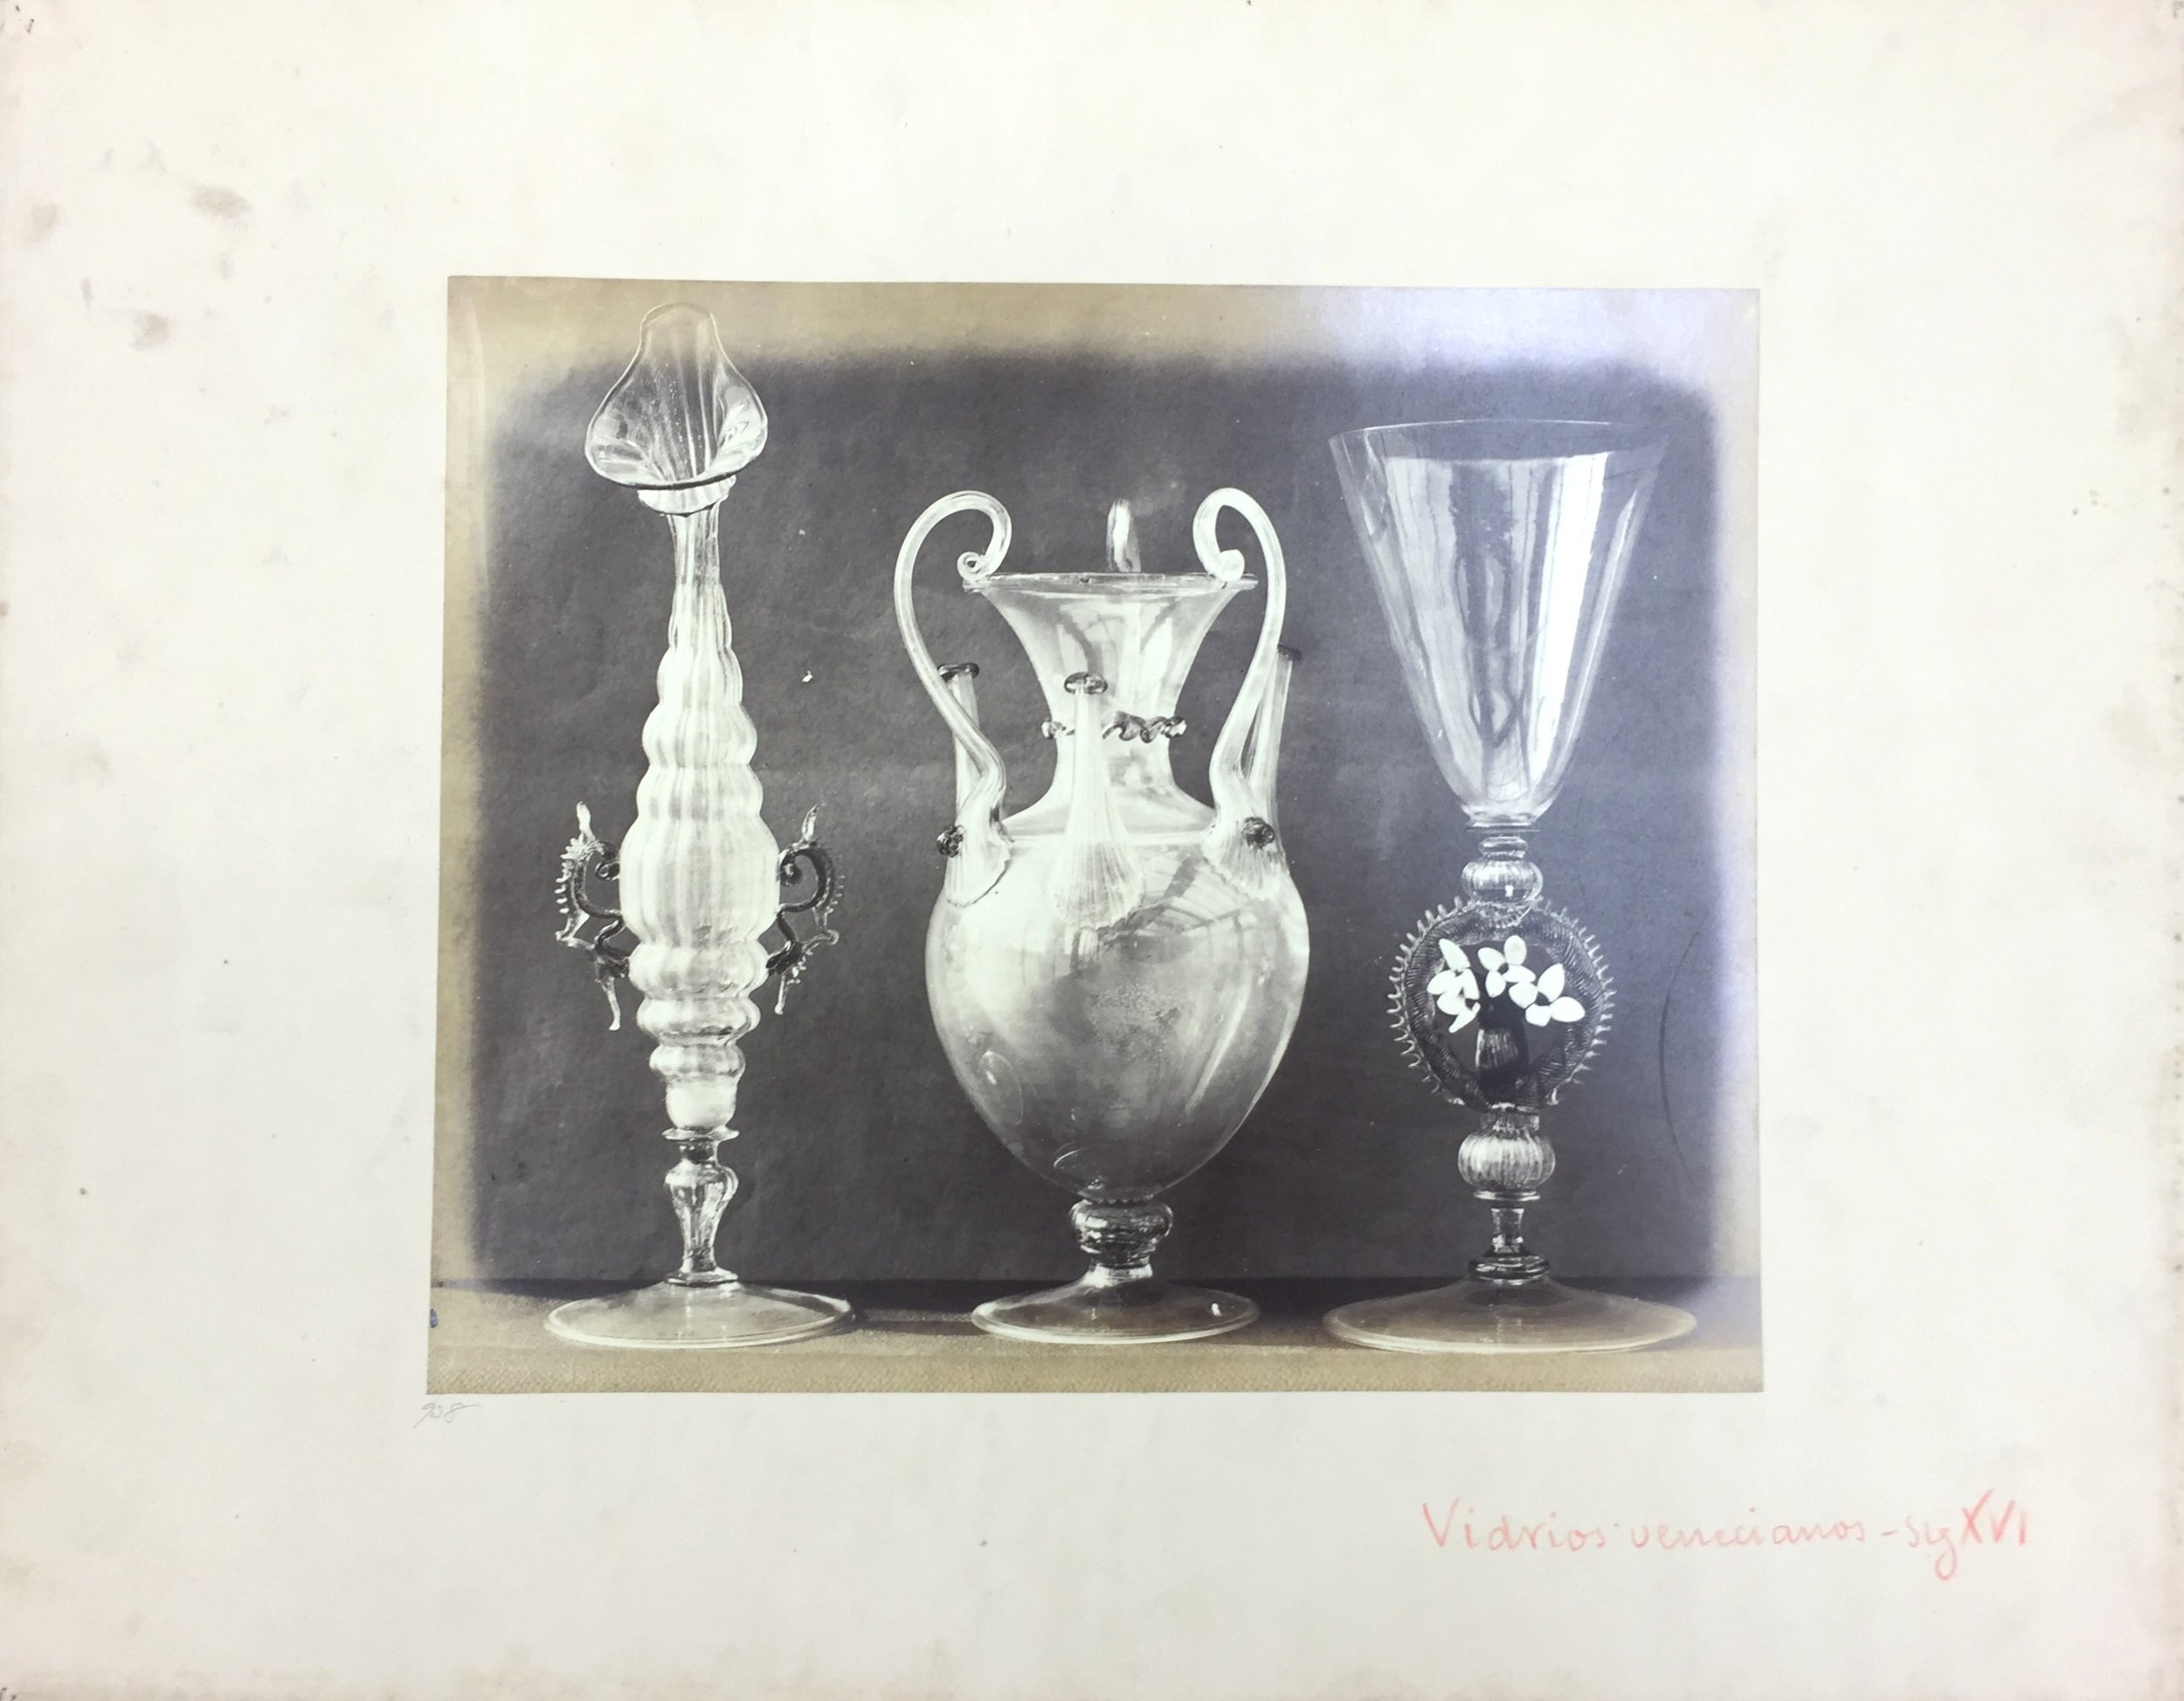 Medieval Venetian Glass, A.D. 1520, No. 938, Antiquities of Britain, British Museum , 1872, Photographed by Stephen Thompson, Vintage albumen print, Photograph: 23 x 27.5 cm, Mount board: 35.5 x 45.5 cm